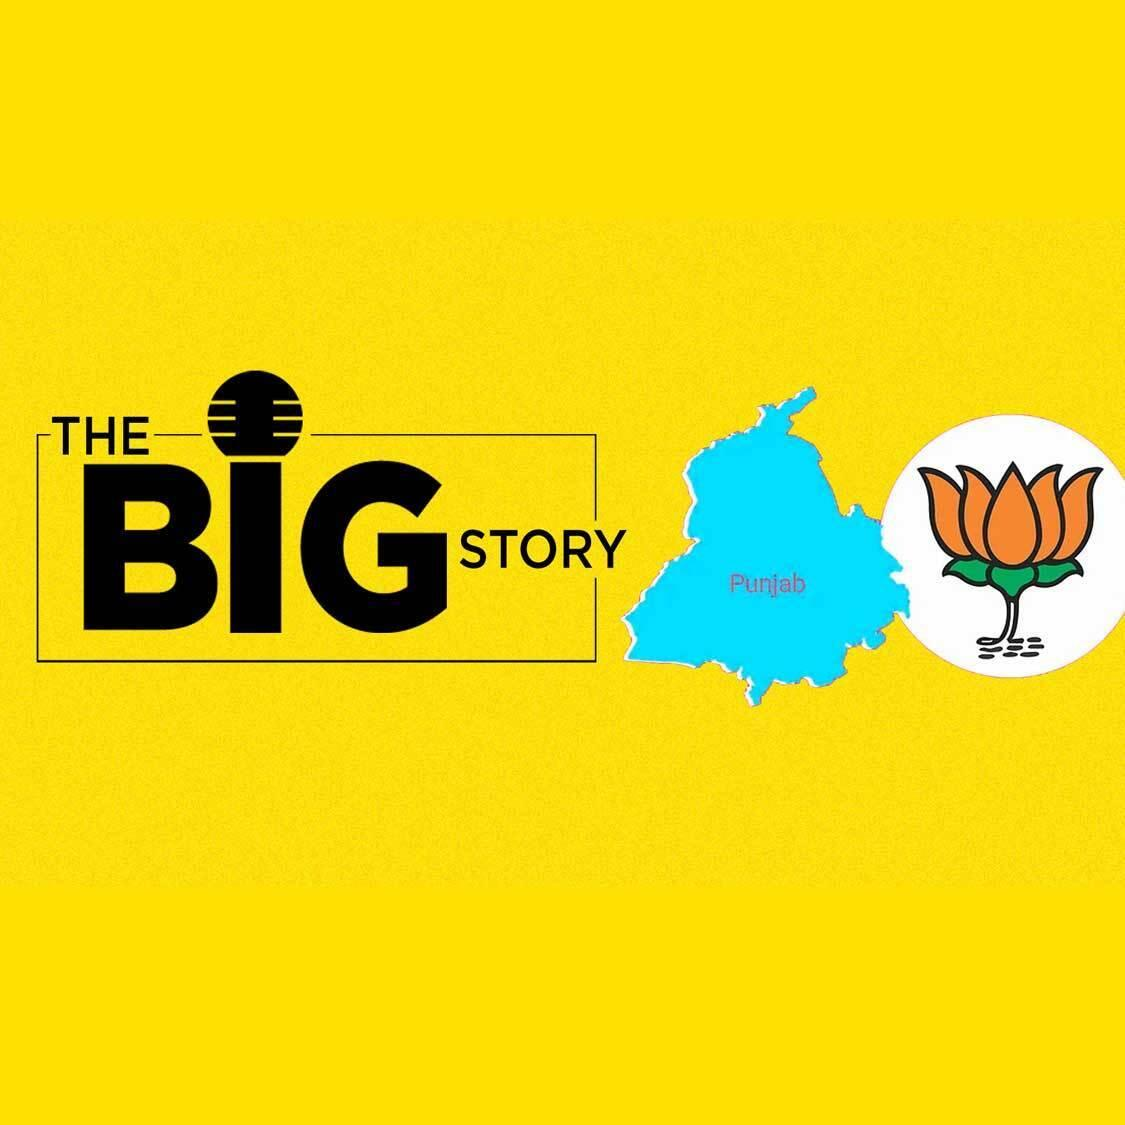 640: Do Punjab Civil Poll Results Project What the State Thinks of BJP?